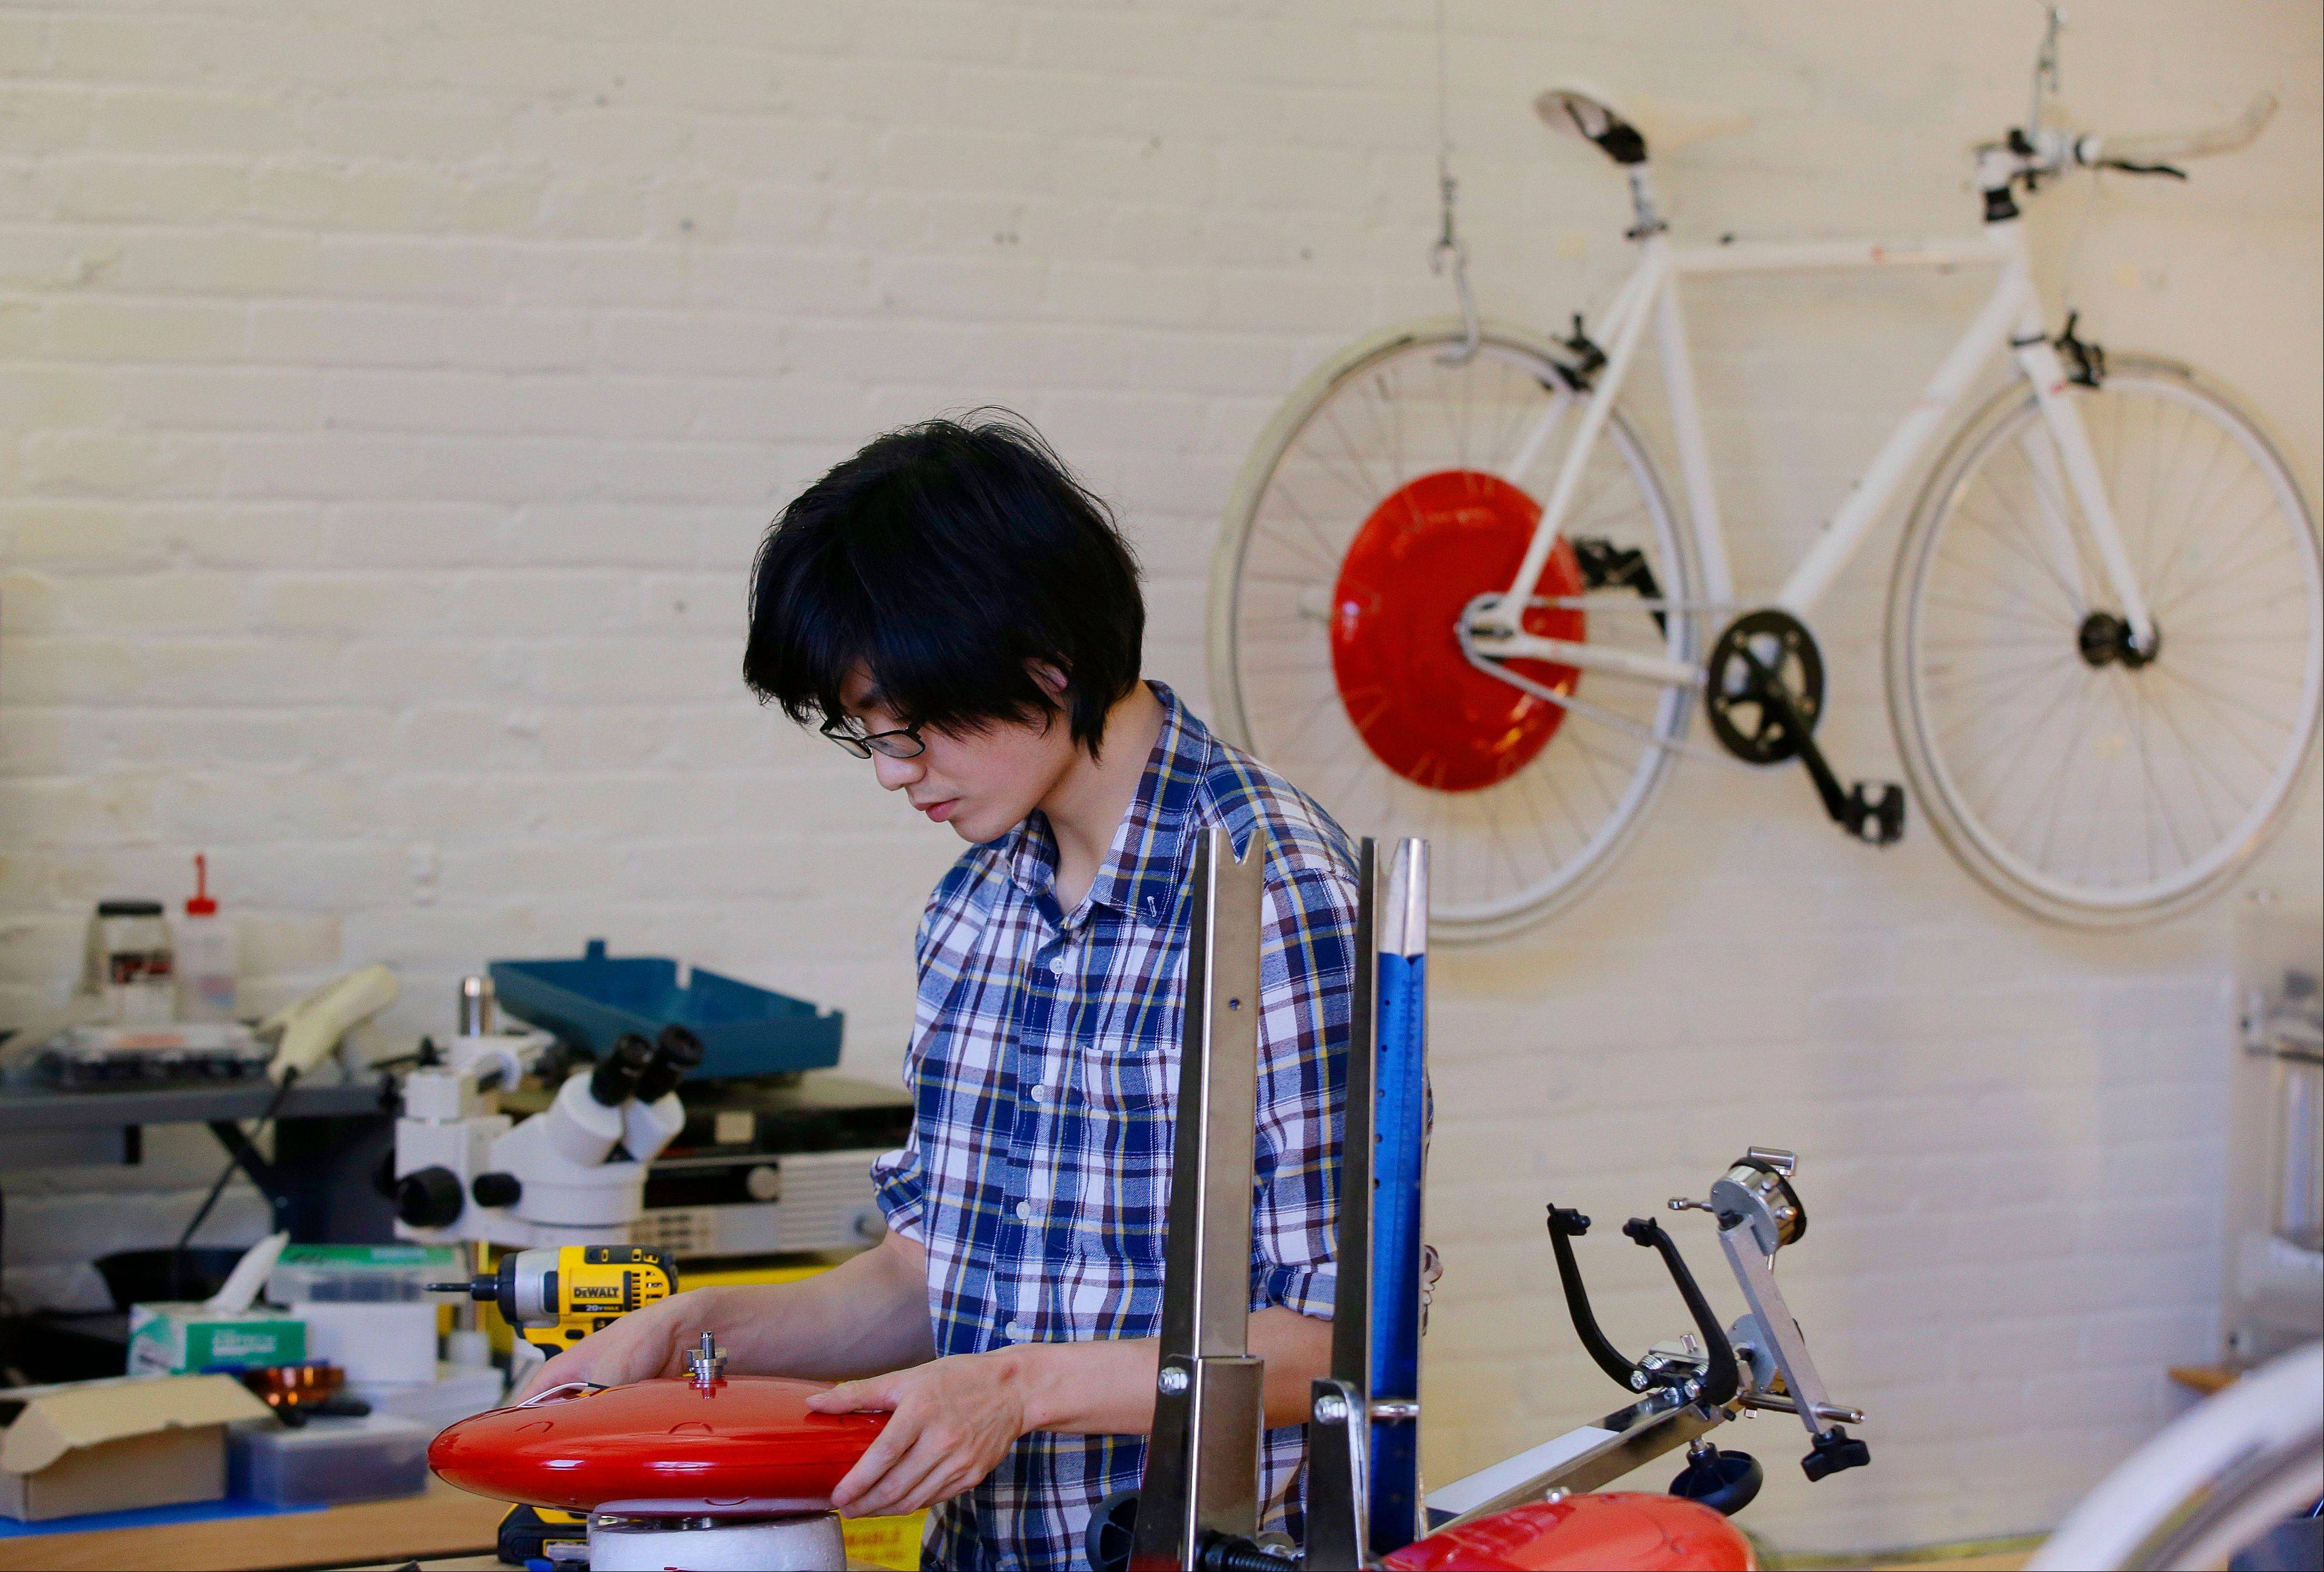 Mechanical and software engineer Julian Fong works on a development to the Copenhagen Wheel, the red disk, a human/electric hybrid bicycle engine, at Superpedestrian in Cambridge, Mass.